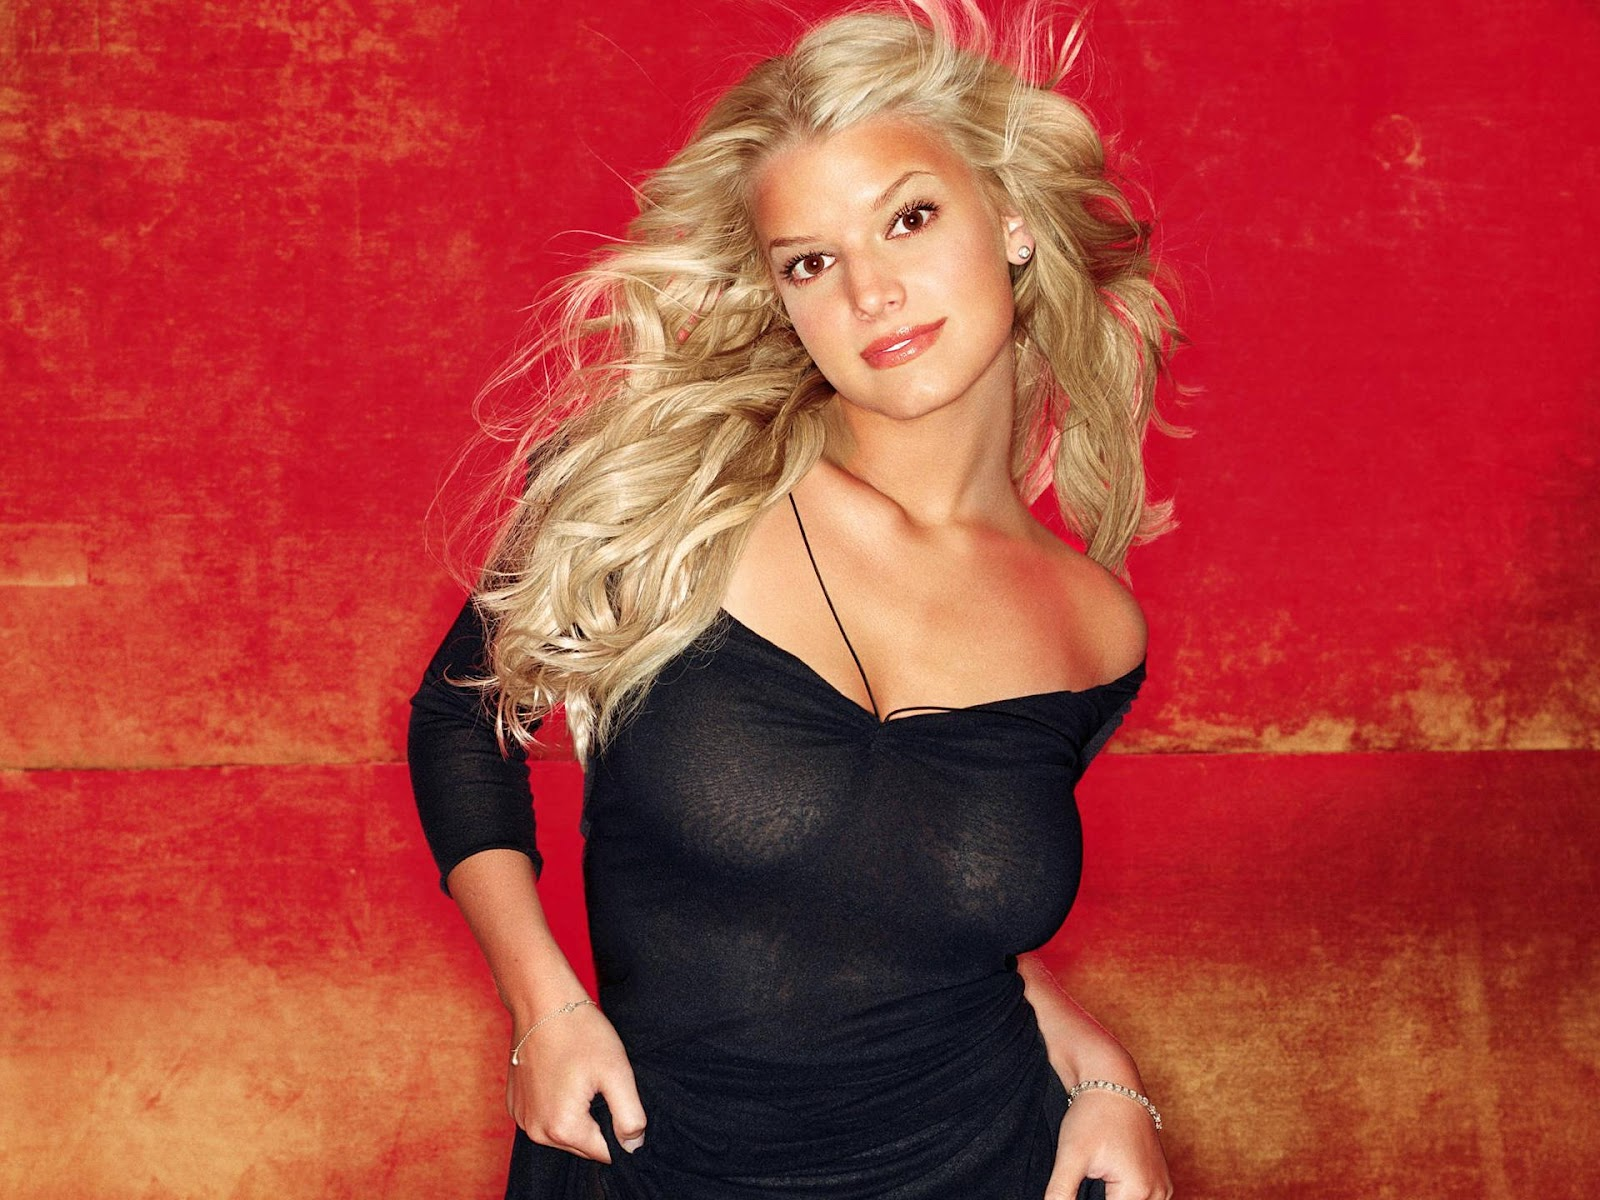 http://1.bp.blogspot.com/-vddyZCRMi5k/T5J7a8Mc0kI/AAAAAAAABE8/JPRRPiu_PWc/s1600/Jessica_Simpson_wallpaper_hd_black_dress.jpg